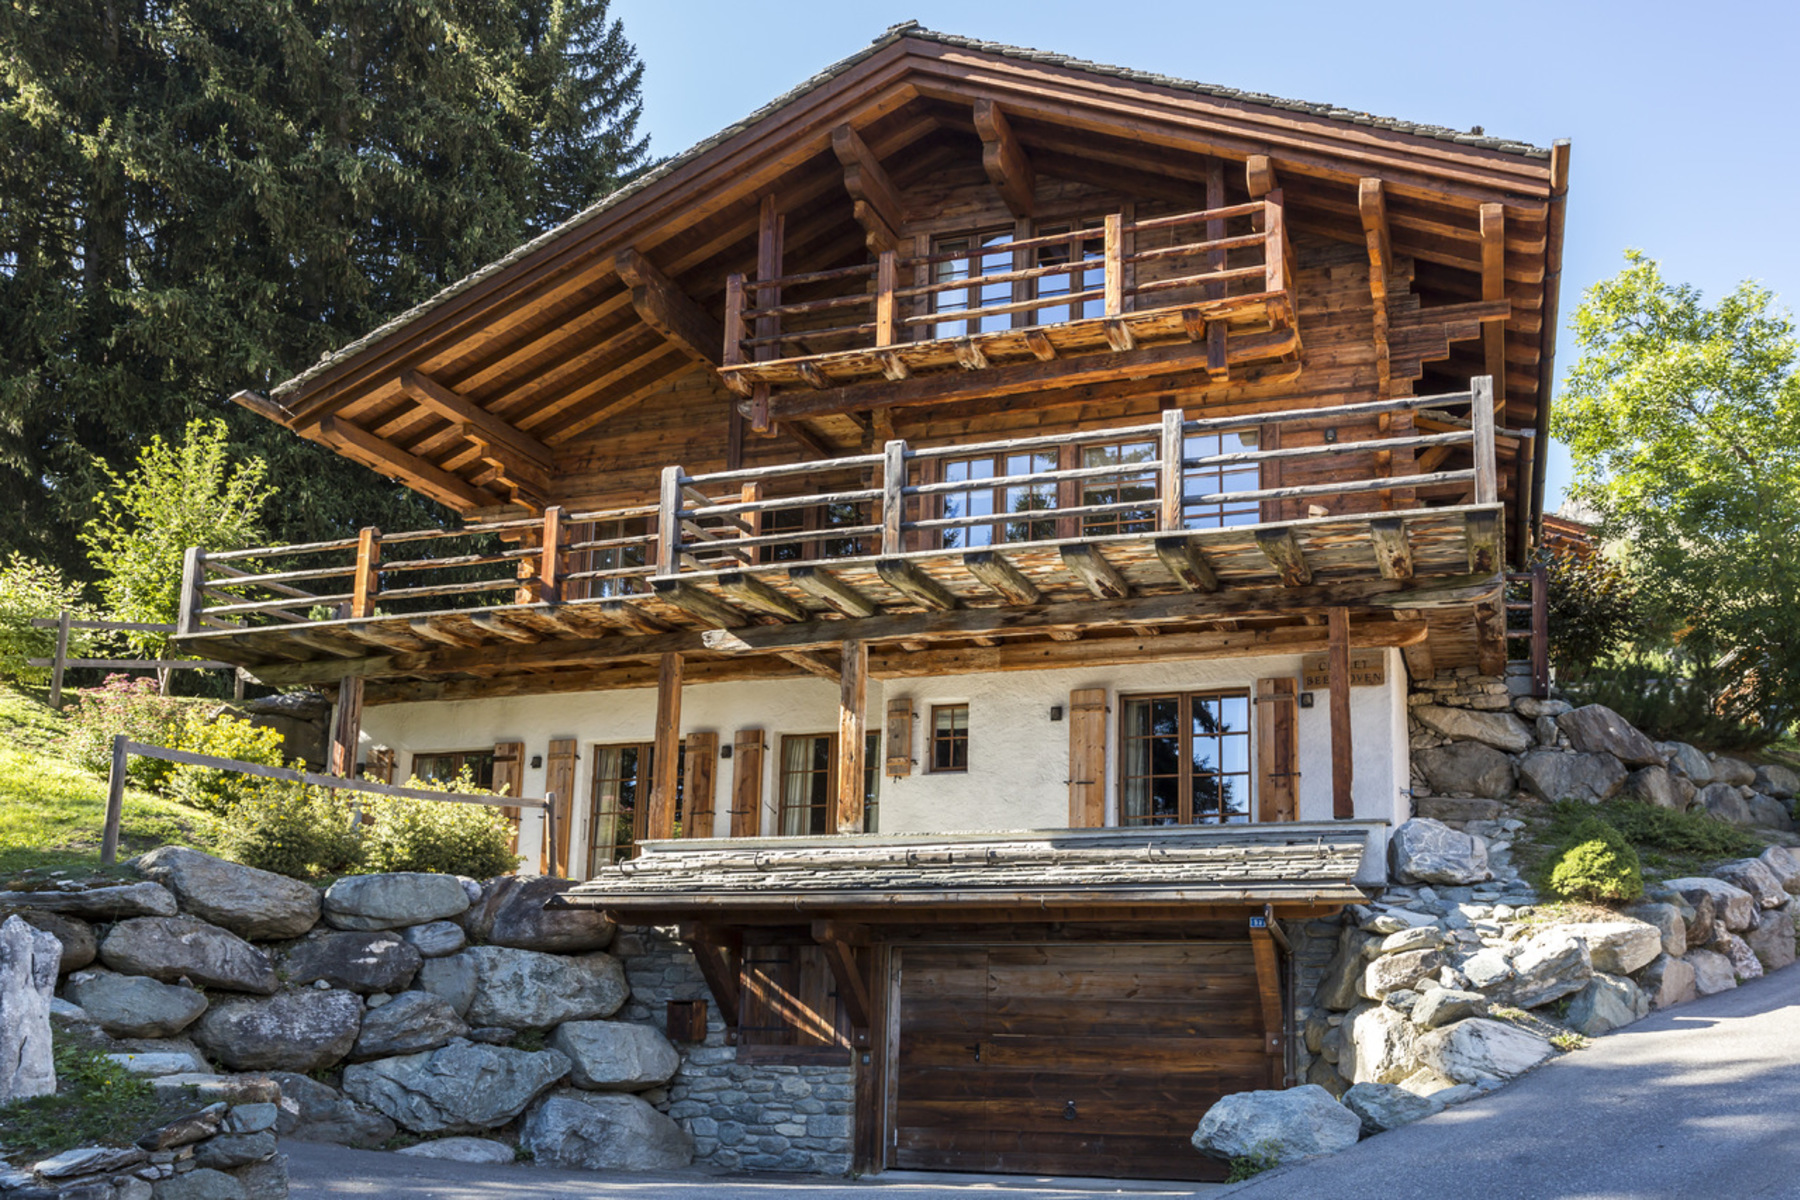 Single Family Home for Sale at Chalet BEETHOVEN Verbier, 1936 Switzerland